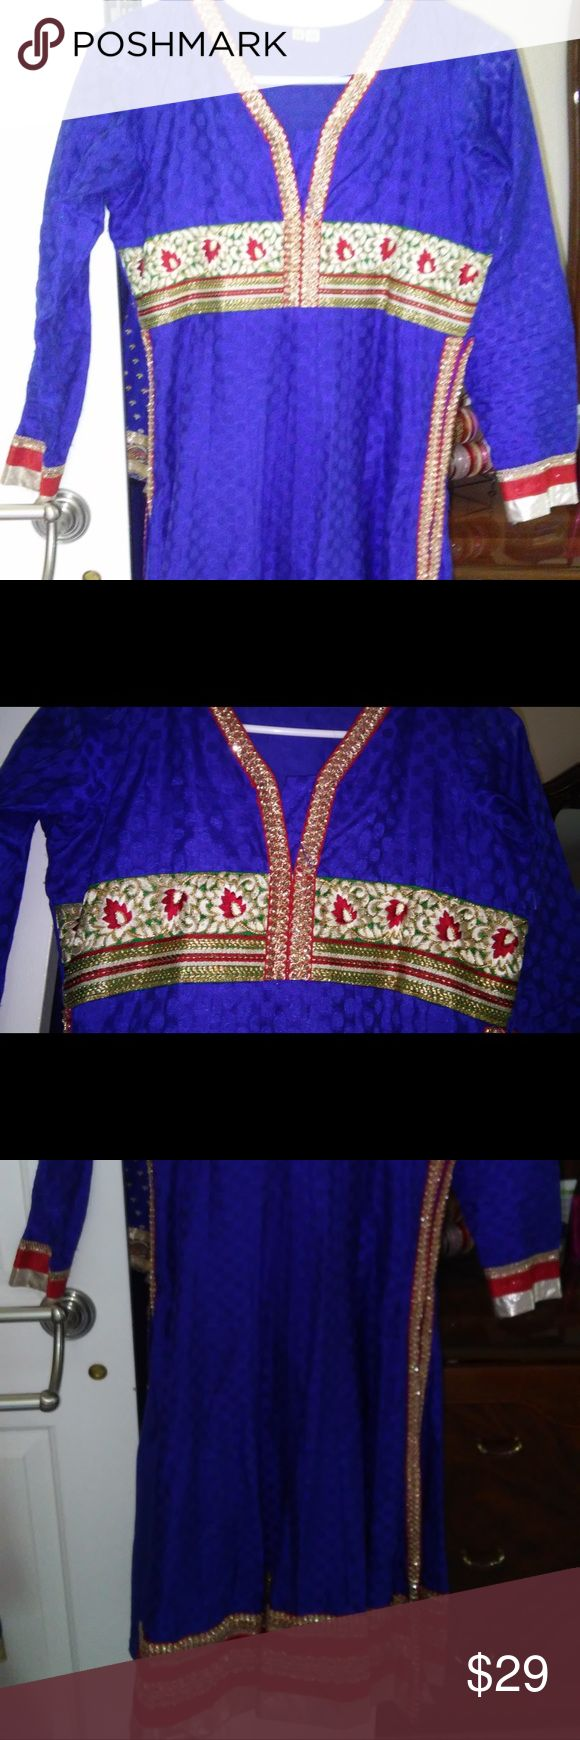 Women's Blue and Red Anarkali Top Beautiful long sleeved anarkali top perfect for parties. Just pair the top with black leggings and sandals, and you have a look! Preworn salwar kameez, but only worn twice- great condition. Please message me if you'd like more photos or want to make an offer. Other